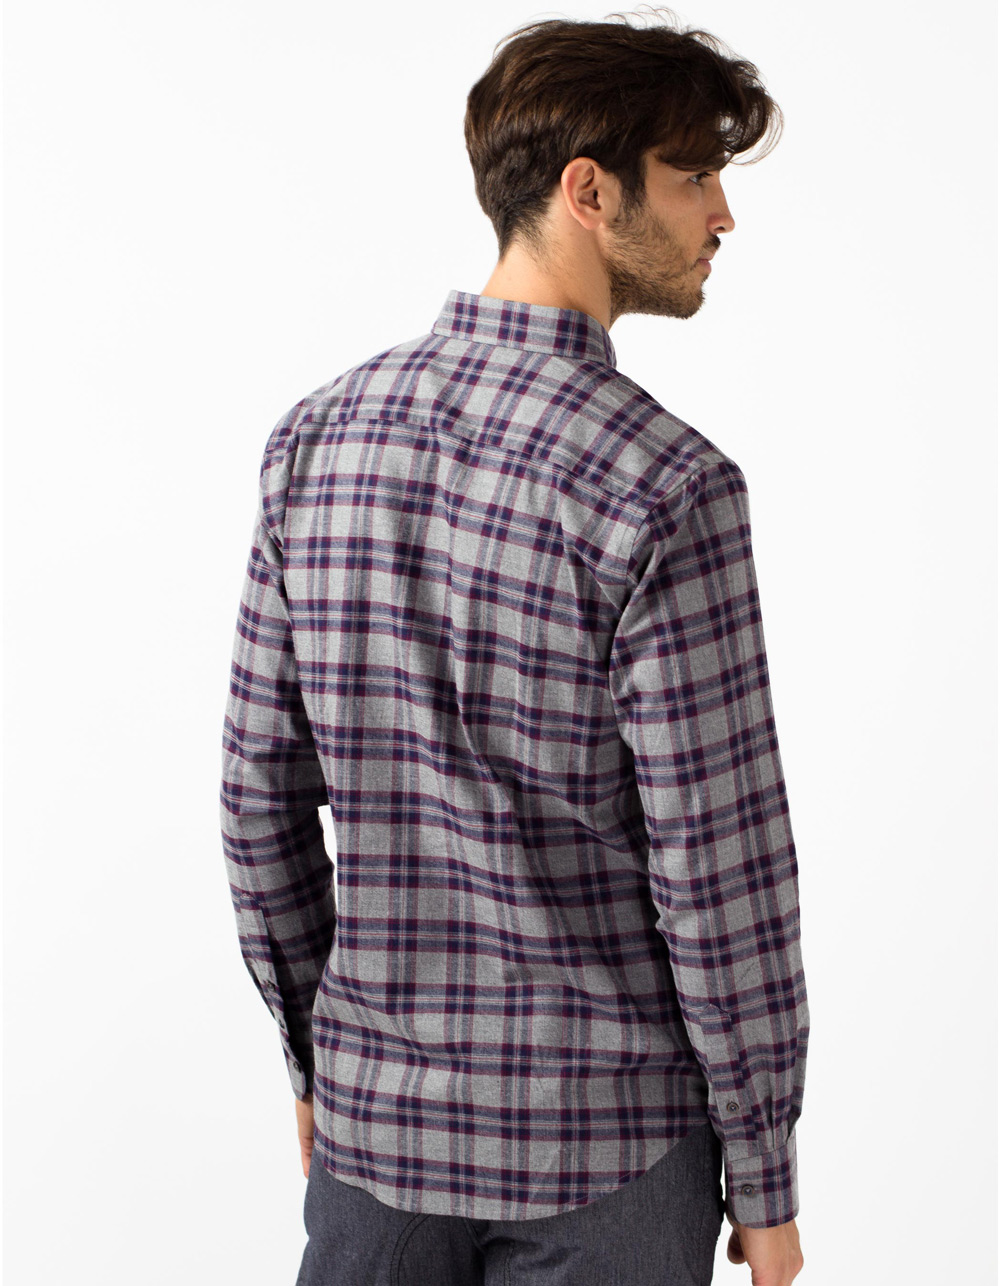 Grey plaid shirt - Backside